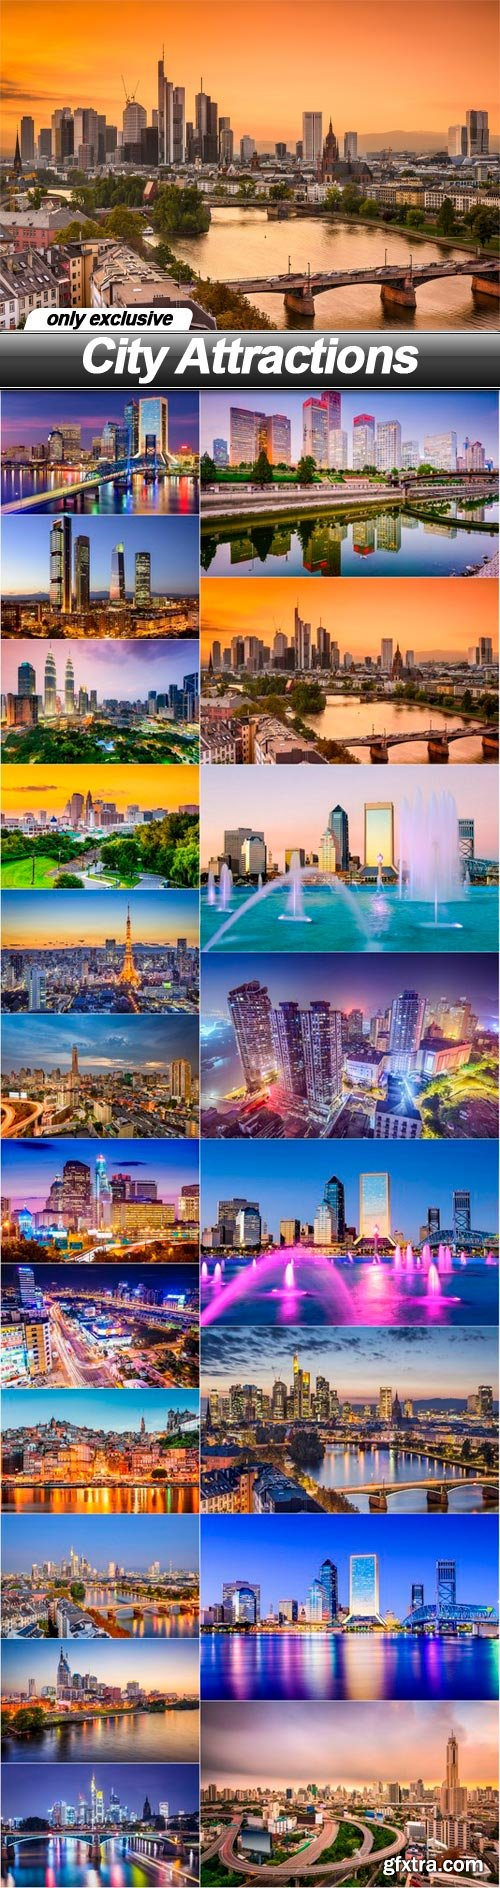 City Attractions - 20 UHQ JPEG